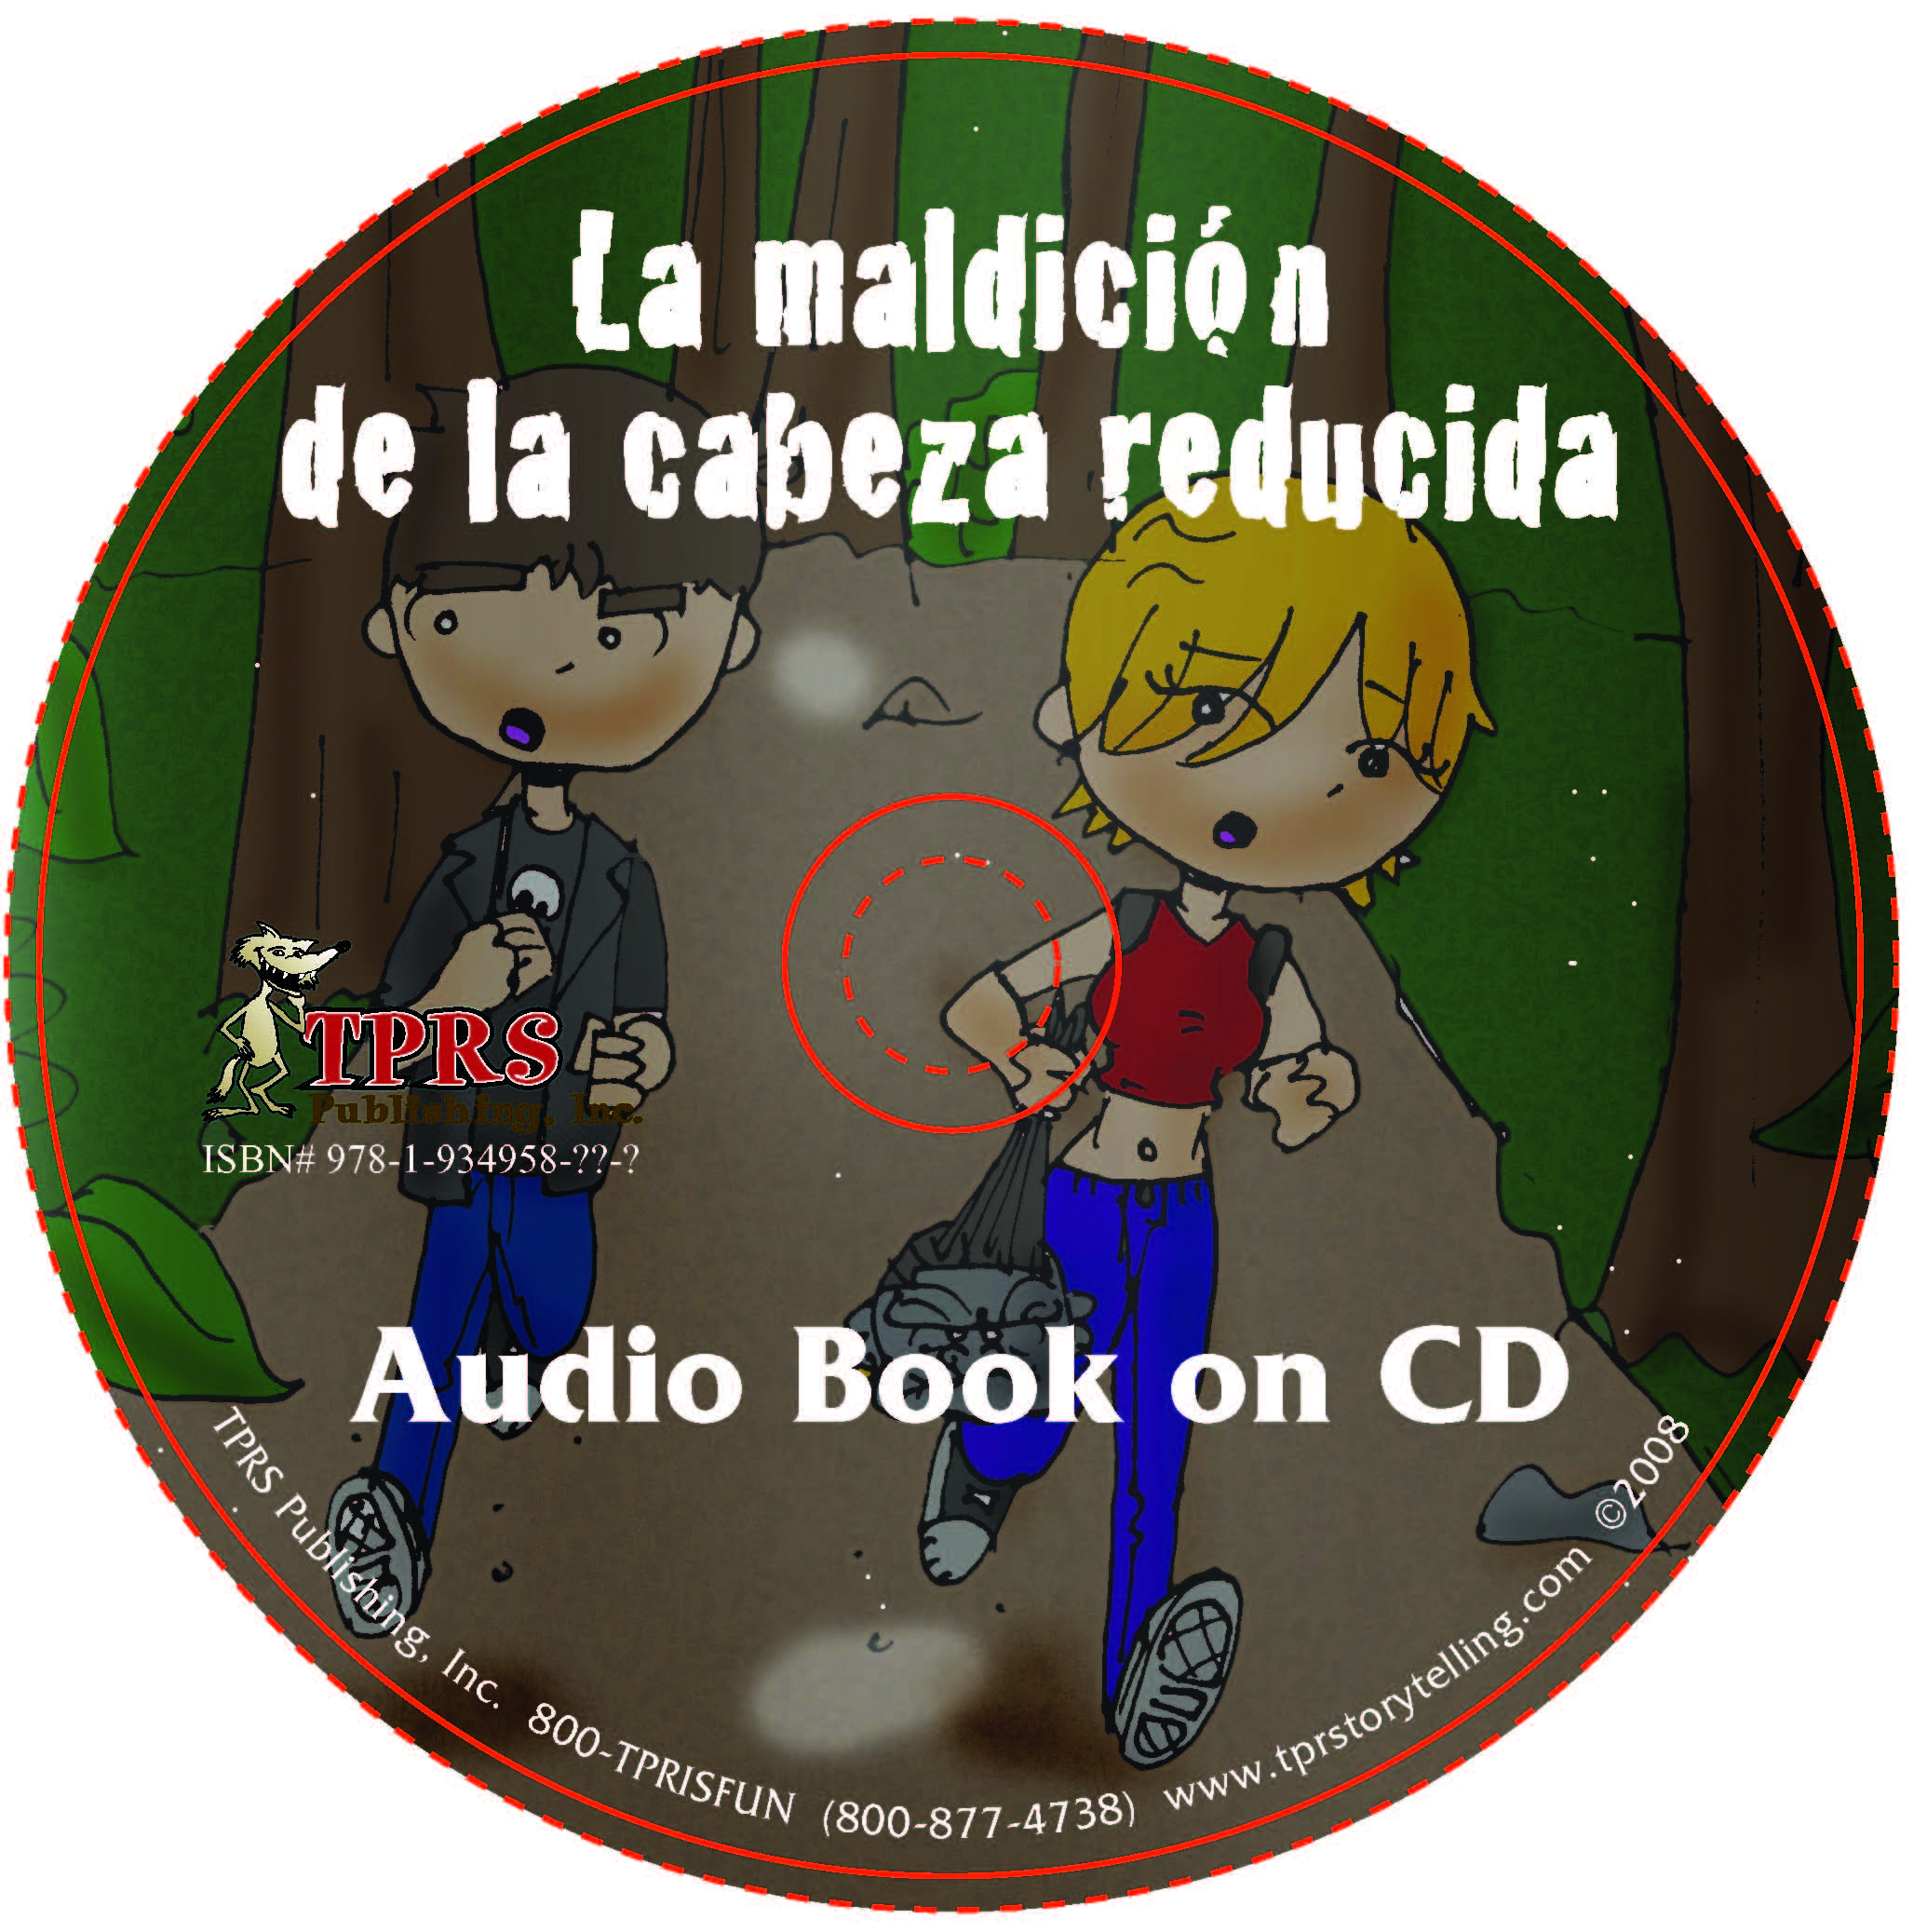 La maldición de la cabeza reducida – Audio Book on CD